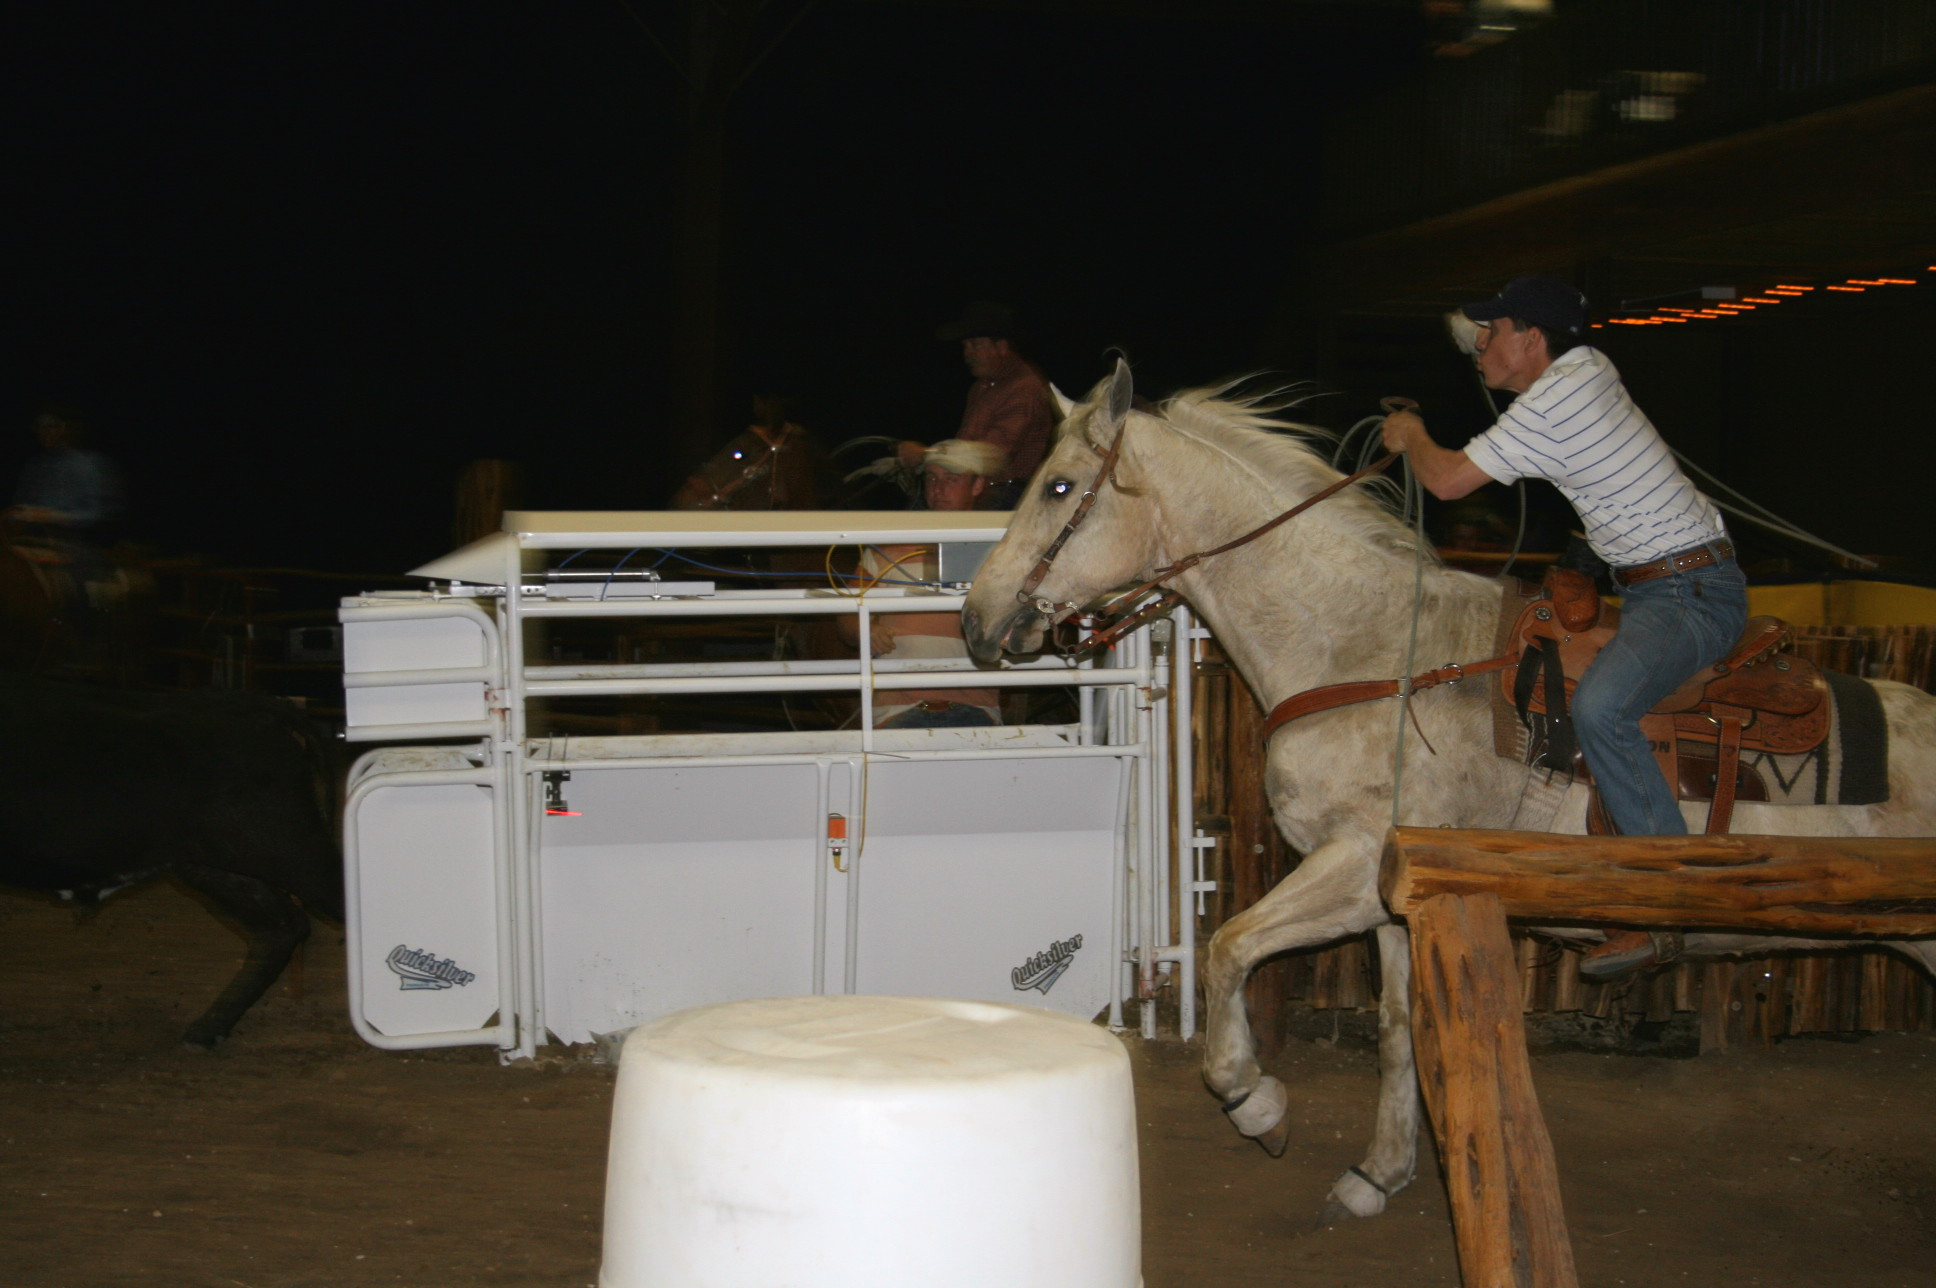 http://store.zcubes.com/C49CEADC5B984C1EAA8AC4996A38595D/Uploaded/Allcat%20Team%20Roping_2013.jpg